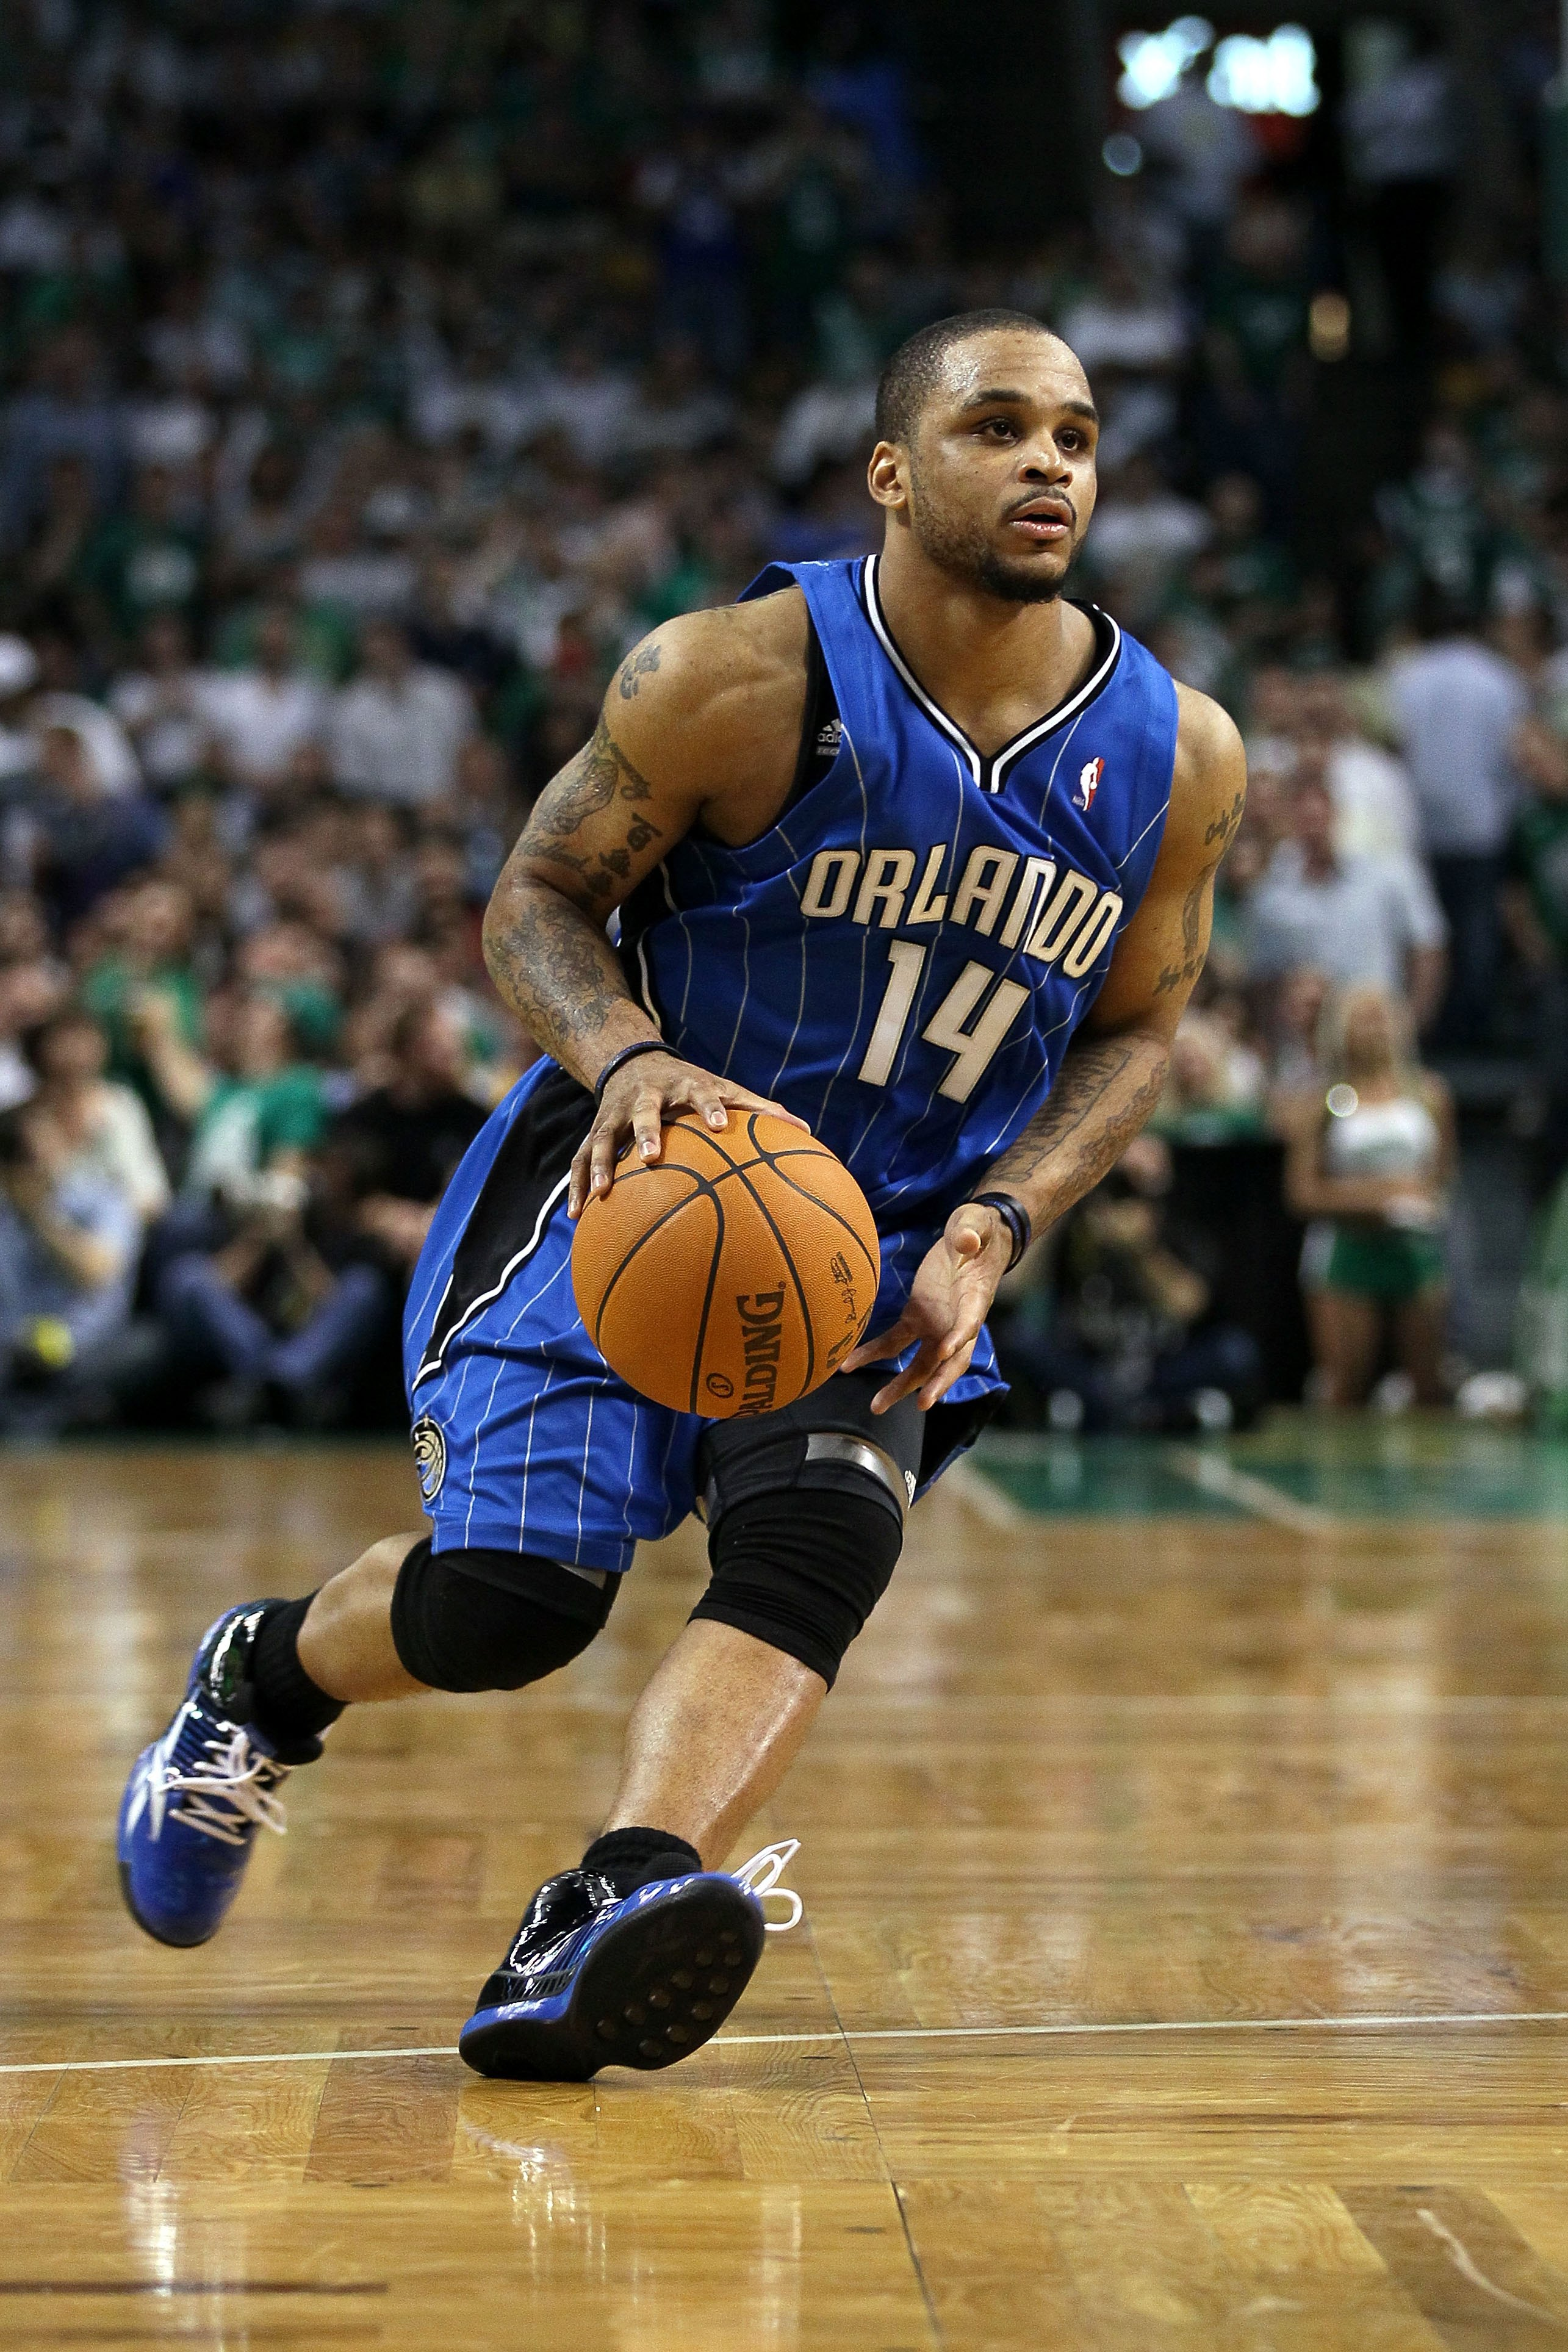 BOSTON - MAY 28:  Jameer Nelson #14 of the Orlando Magic drives against the Boston Celtics in Game Six of the Eastern Conference Finals during the 2010 NBA Playoffs at TD Garden on May 28, 2010 in Boston, Massachusetts.  NOTE TO USER: User expressly ackno